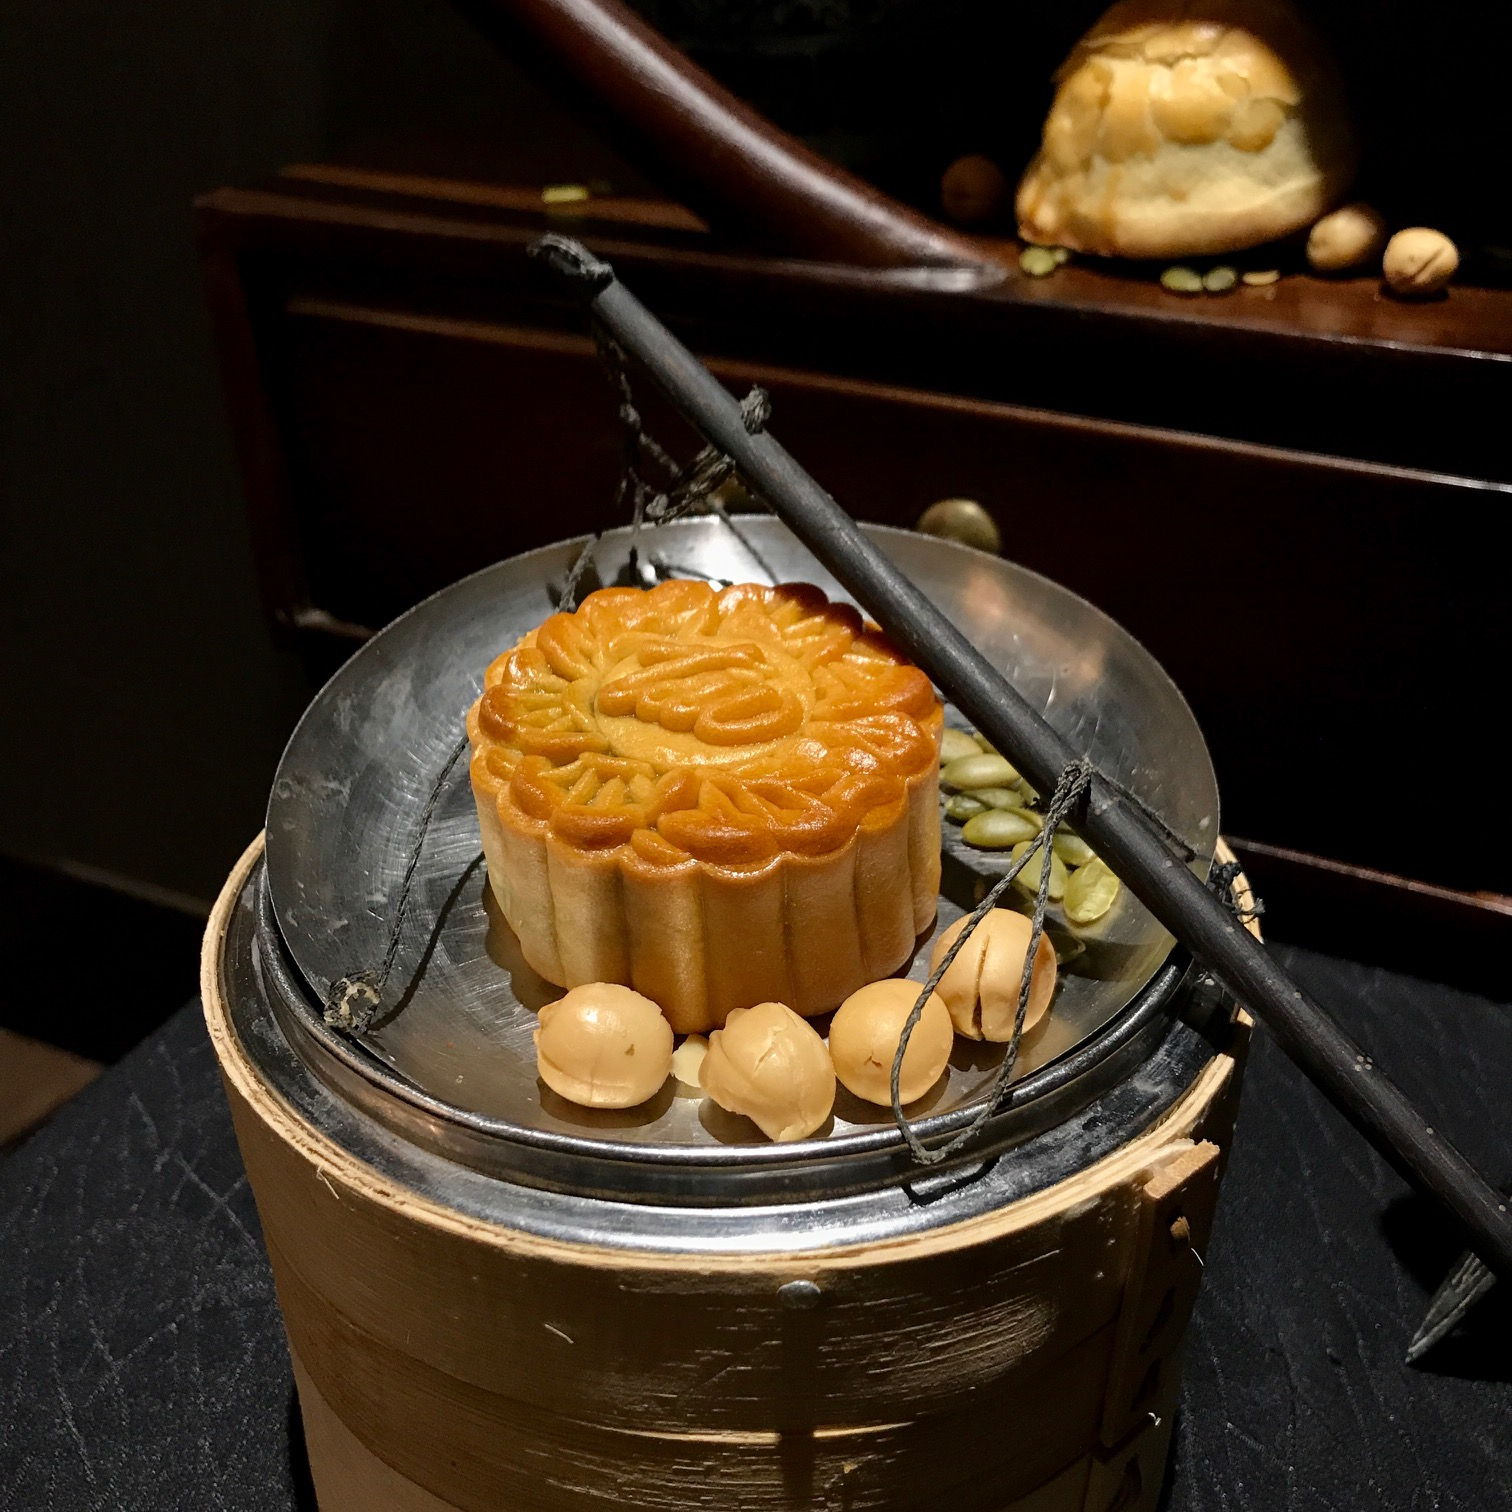 Walauwei com!: Intercontinental KL celebrates the mooncake